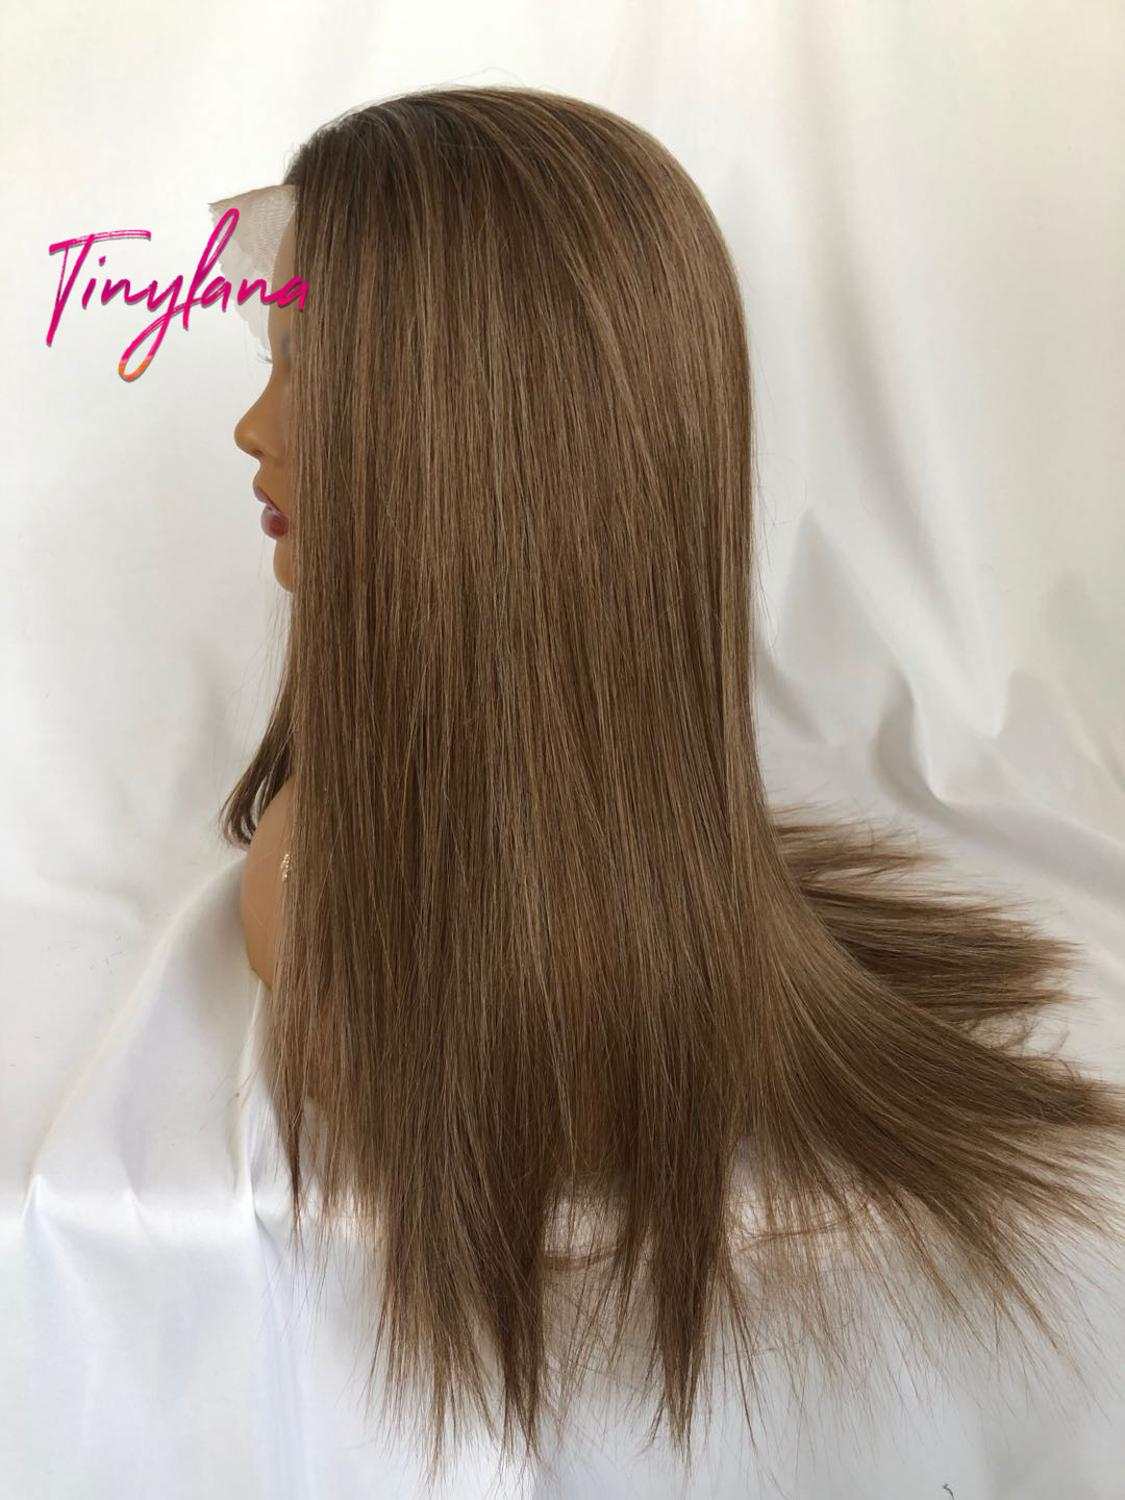 Image 3 - TINY LANA Long Silky Straight Brown Blonde Lace Front Wig with Baby Hair Heat Resistant 100%Futura Synthetic Wigs for WomenSynthetic Lace Wigs   -